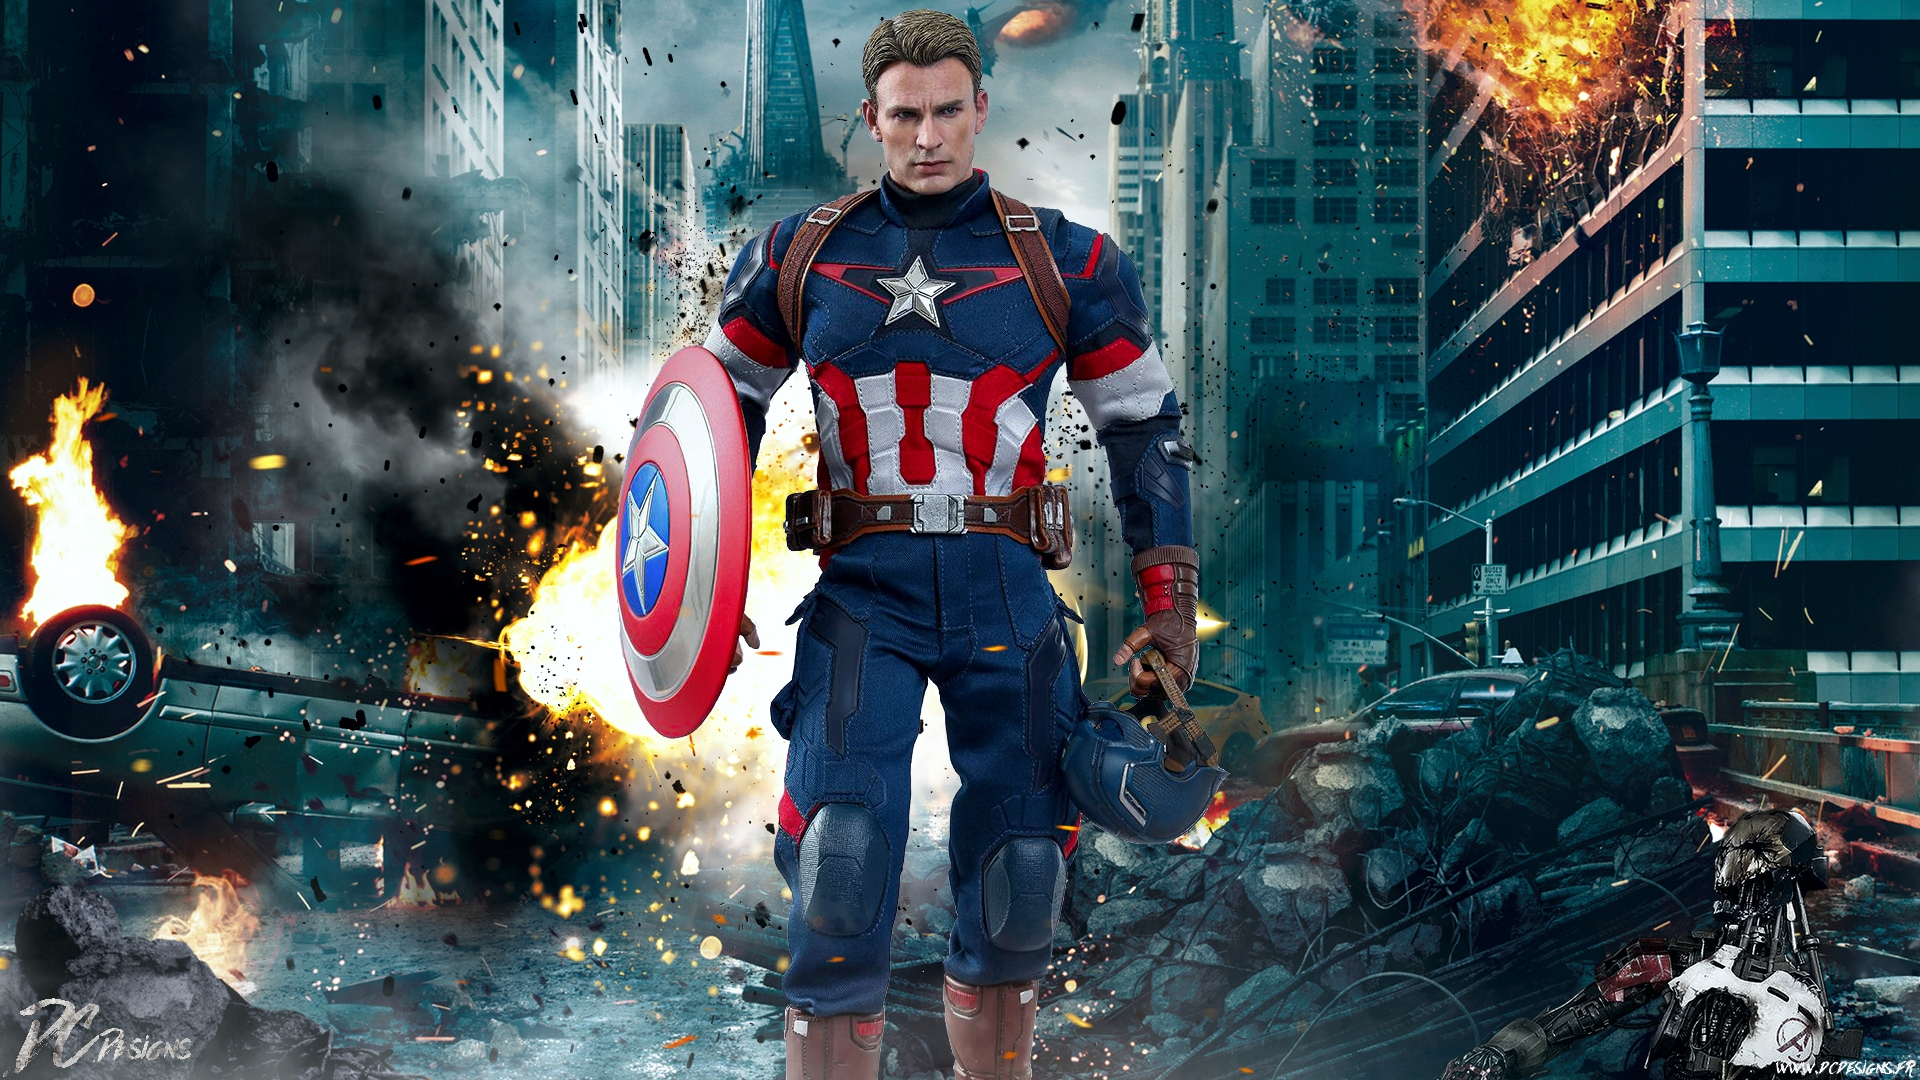 10 Most Popular Captain America Chris Evans Wallpaper FULL HD 1920×1080 For PC Background